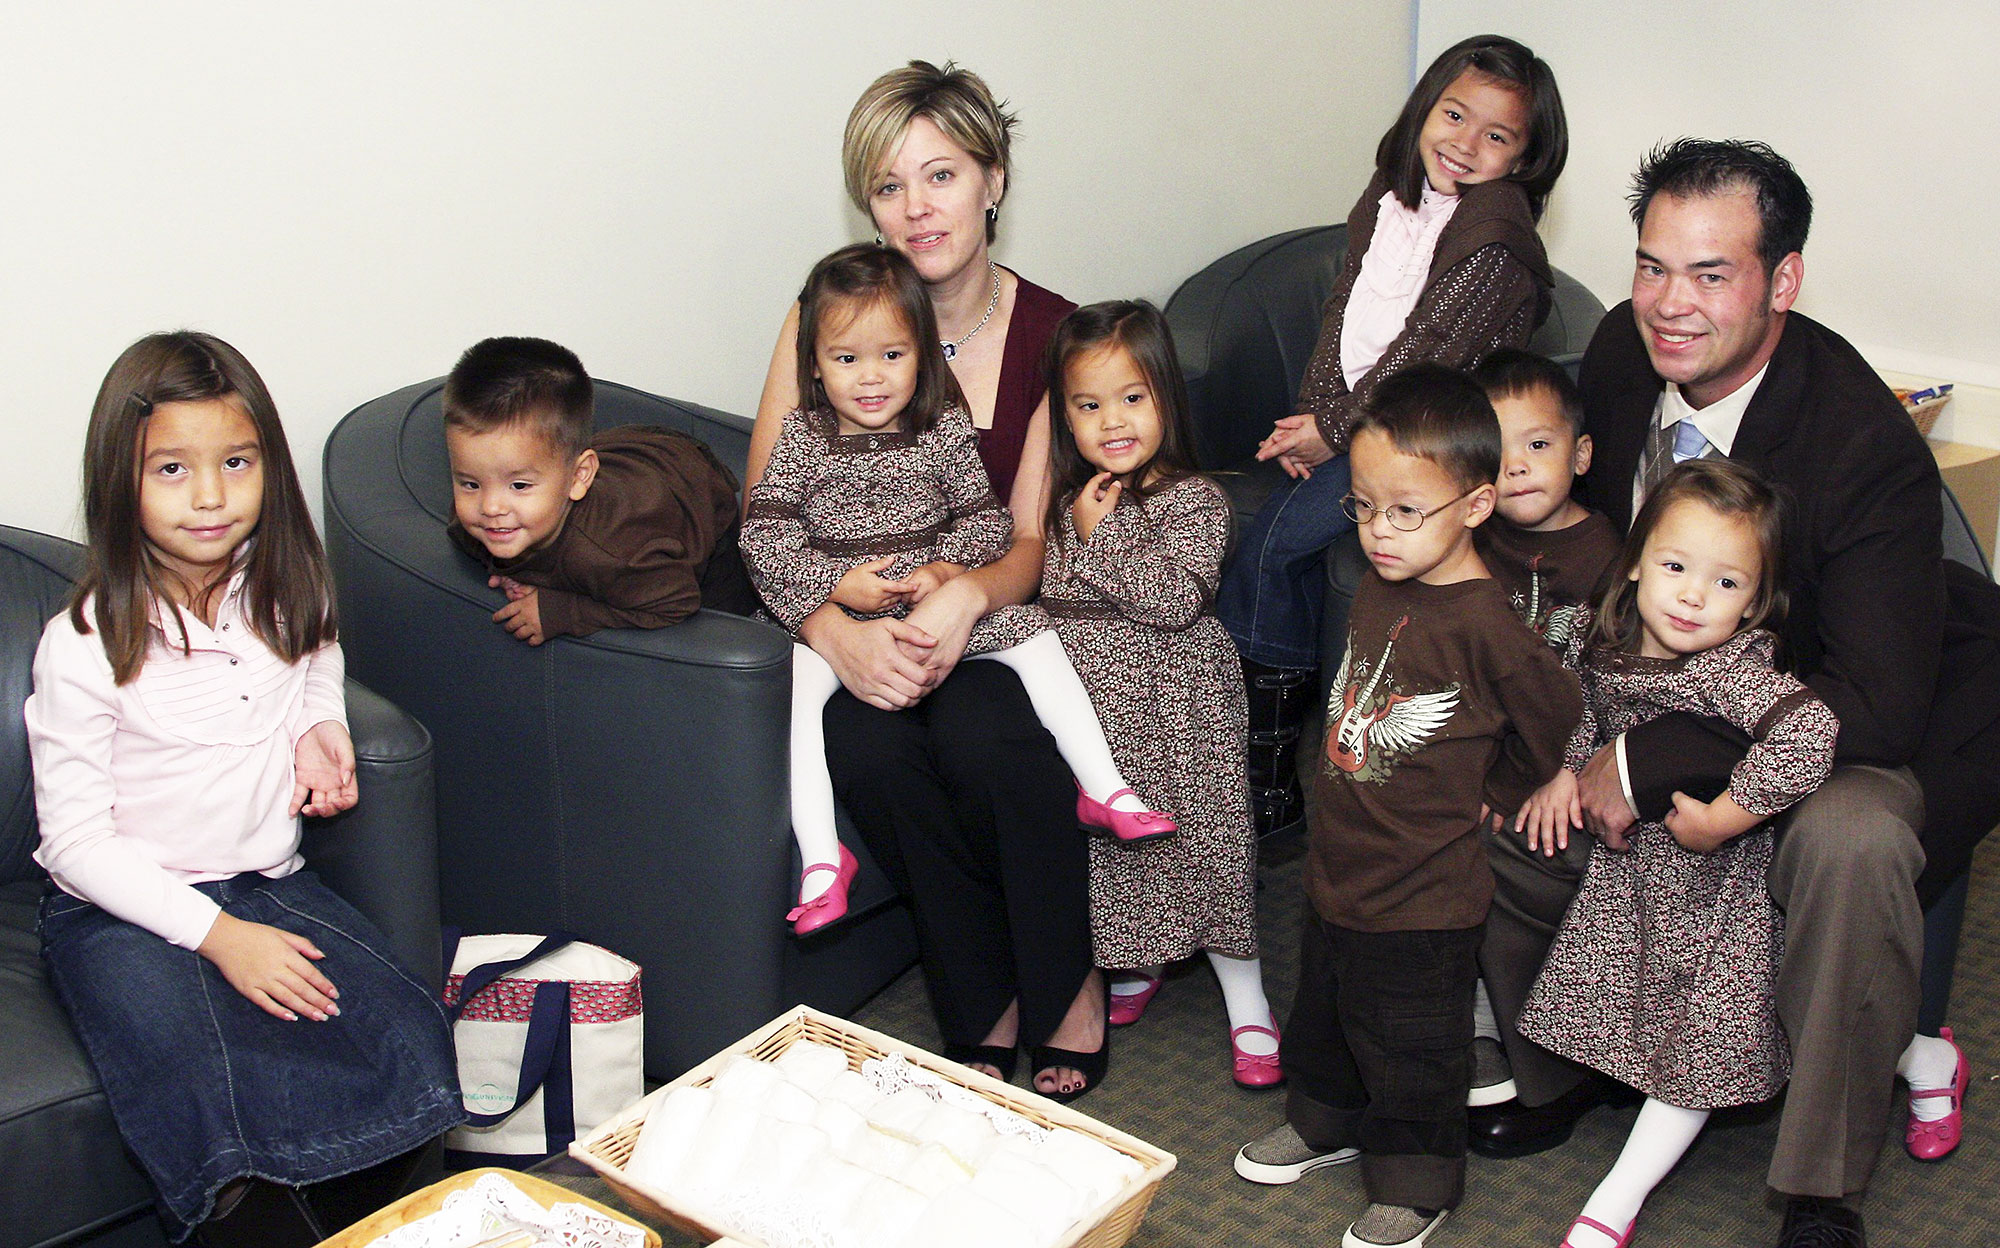 Kate Gosselin Defends Overzealous Protective Parenting - Kate Gosselin and John Gosselin talk about their twin daughters and sextuplets on NBC News' 'Today' on October 2, 2007.